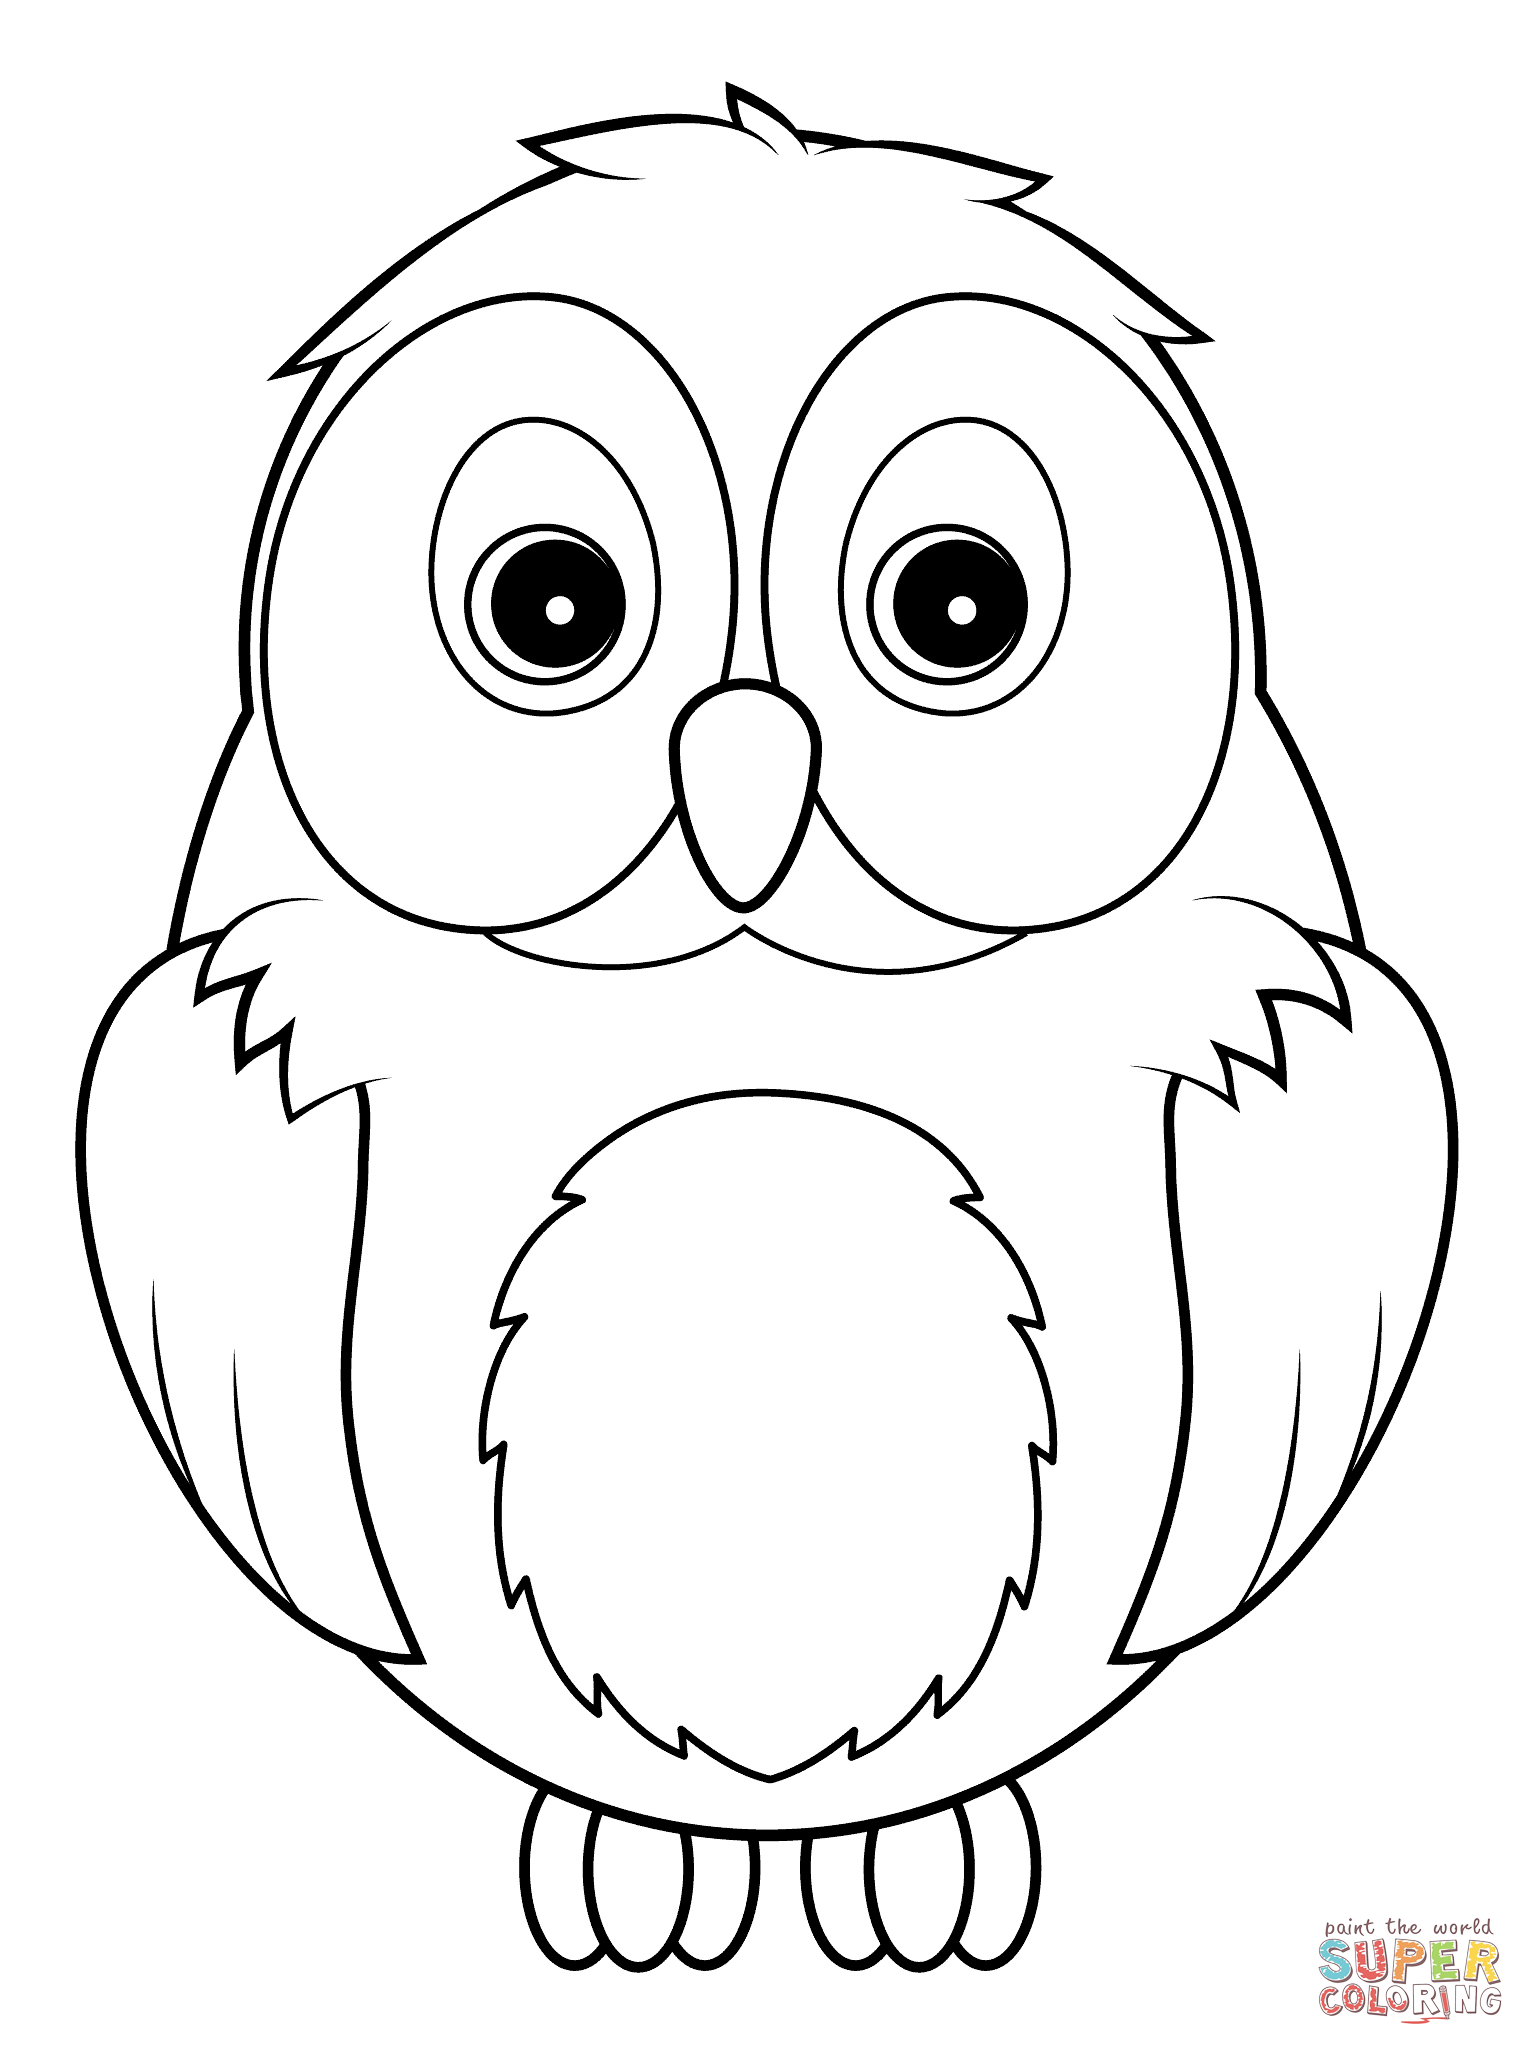 easy cute owl coloring pages simple owl drawing coloring pages cute pages owl coloring easy